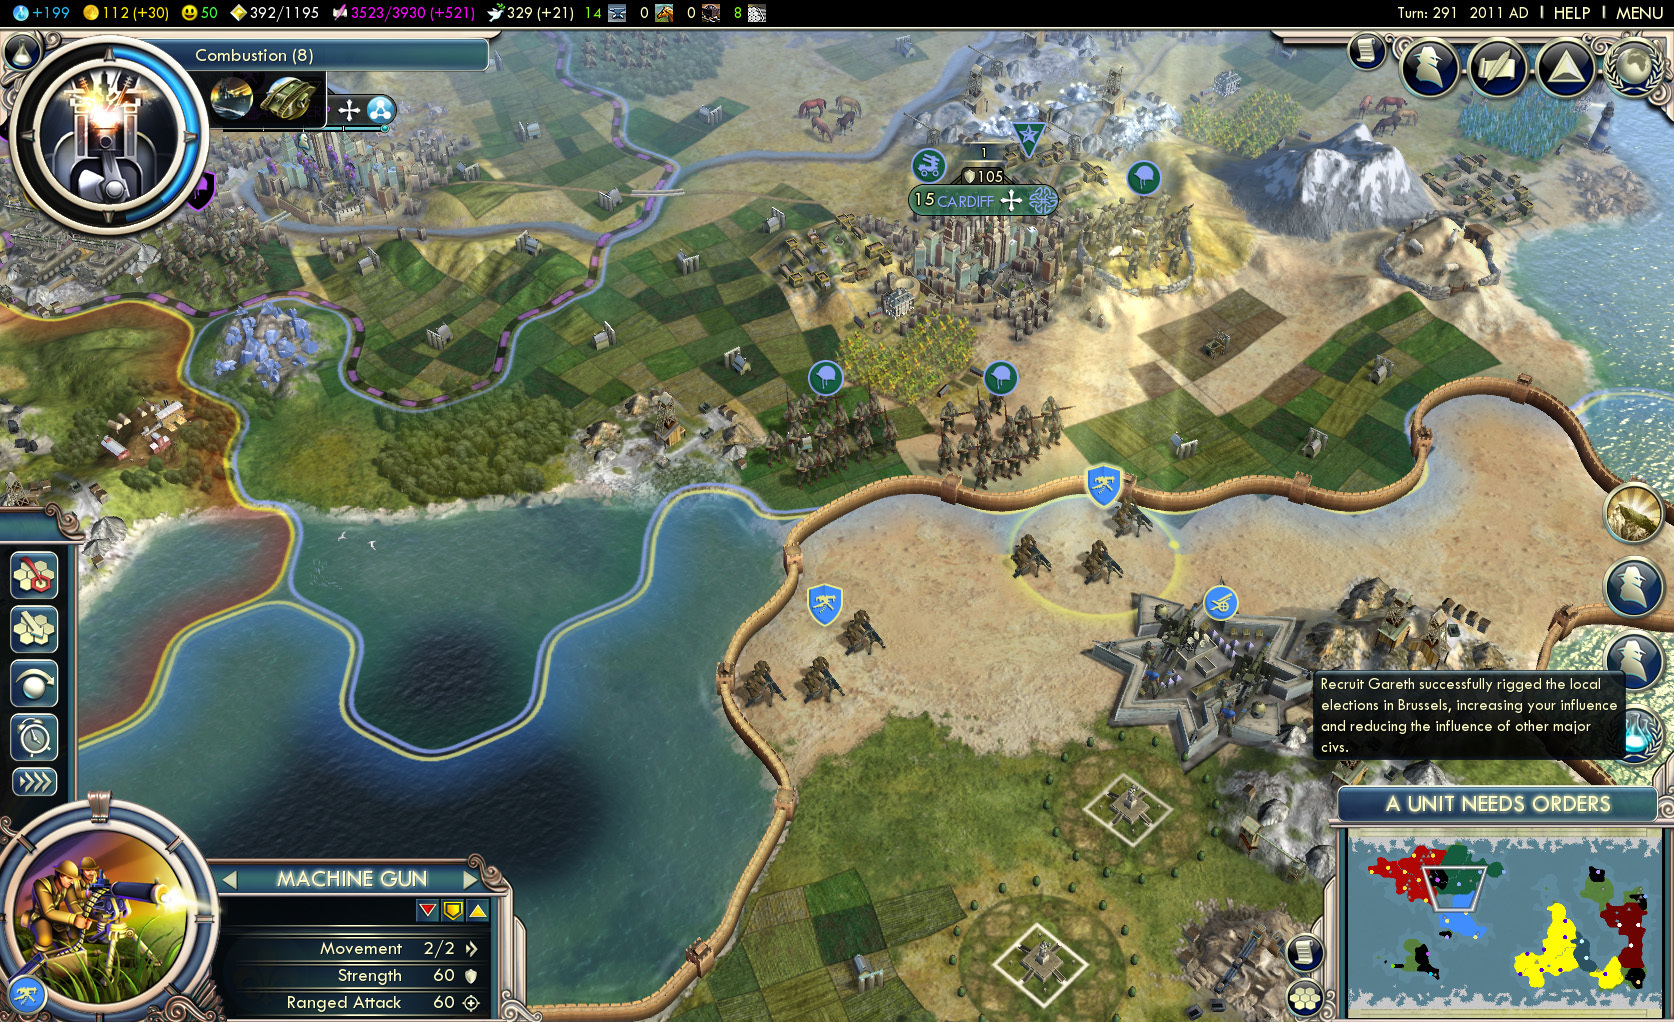 Civ 5 how to turn off turn timer in game